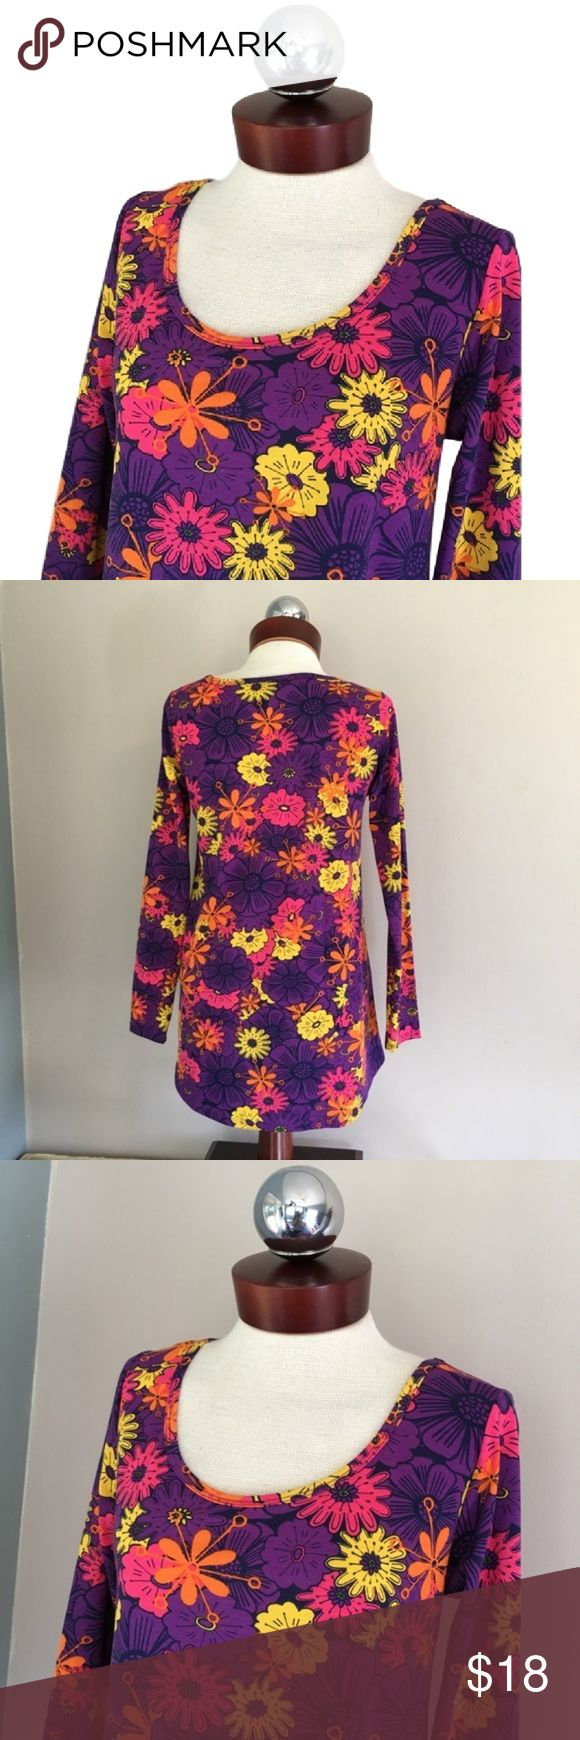 LULAROE lynnae retro floral long sleeve top S LULAROE lynnae retro floral long sleeve top S  SIZE S Excellent condition!   Polyester, spandex.  Bust 36 length 26.5 LuLaRoe Tops Blouses